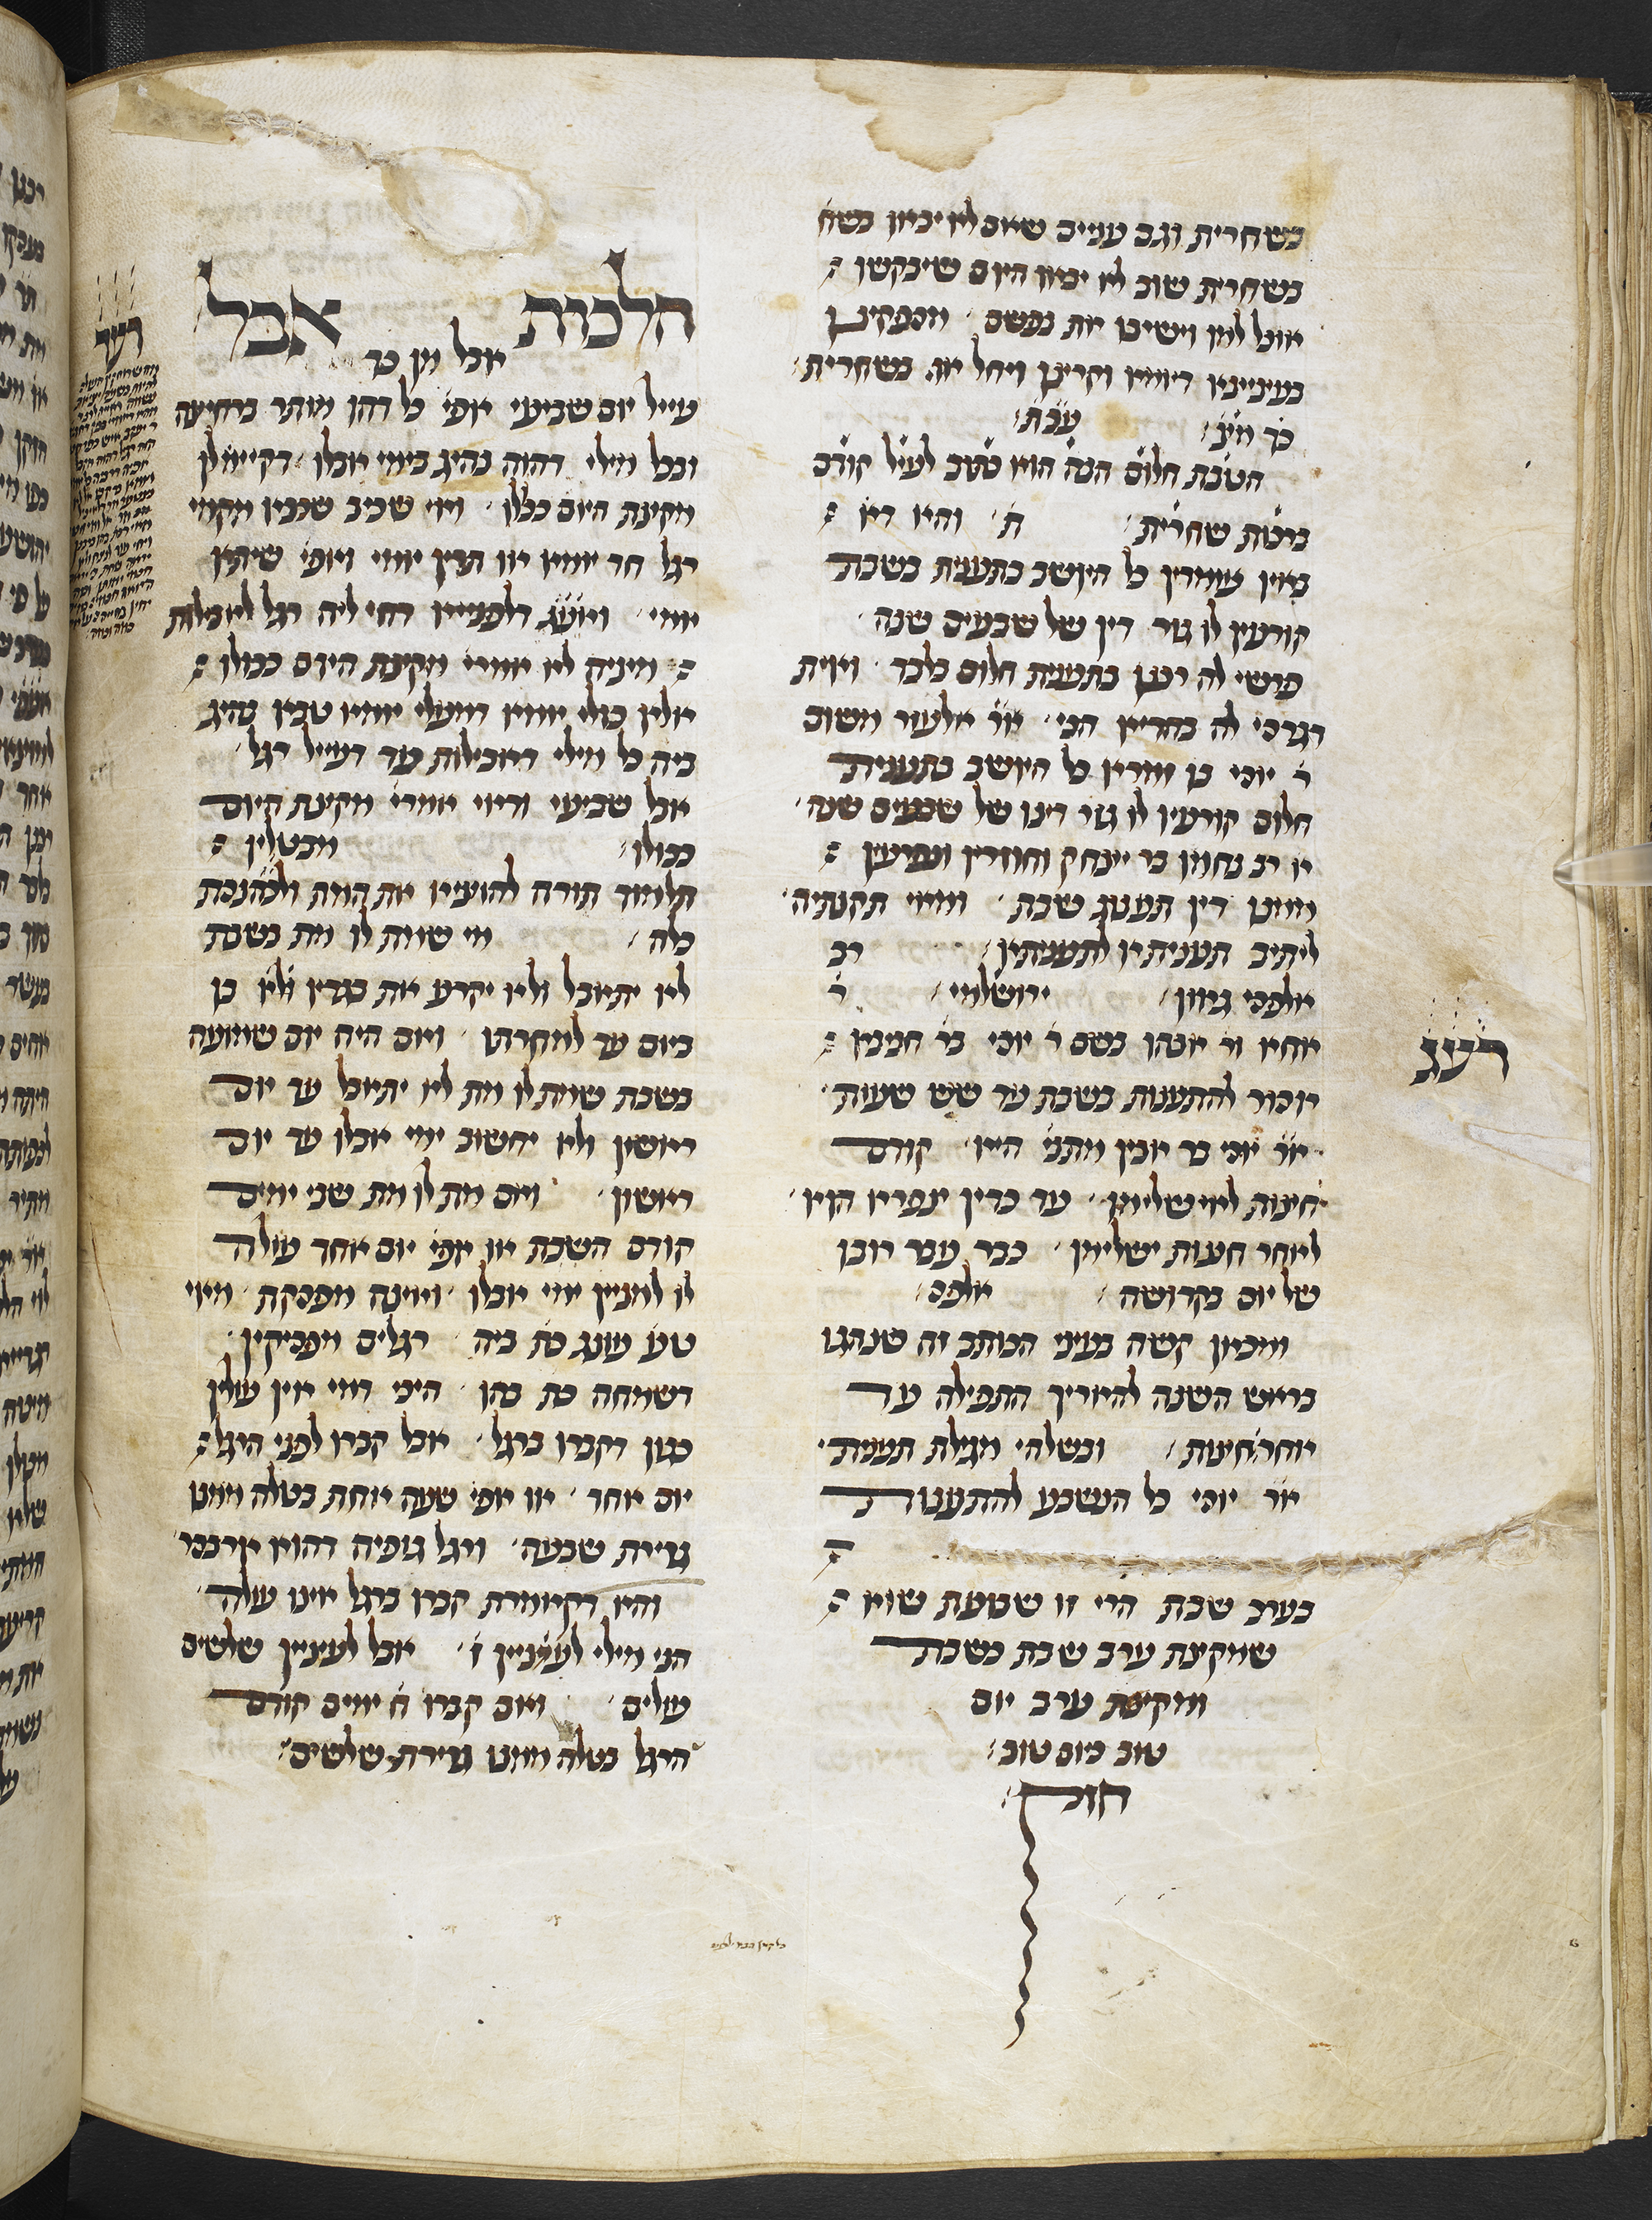 Hilkhot evel, Mahzor Vitry, Add MS 27200, Hebrew Manuscripts Digitisation Project, British Library